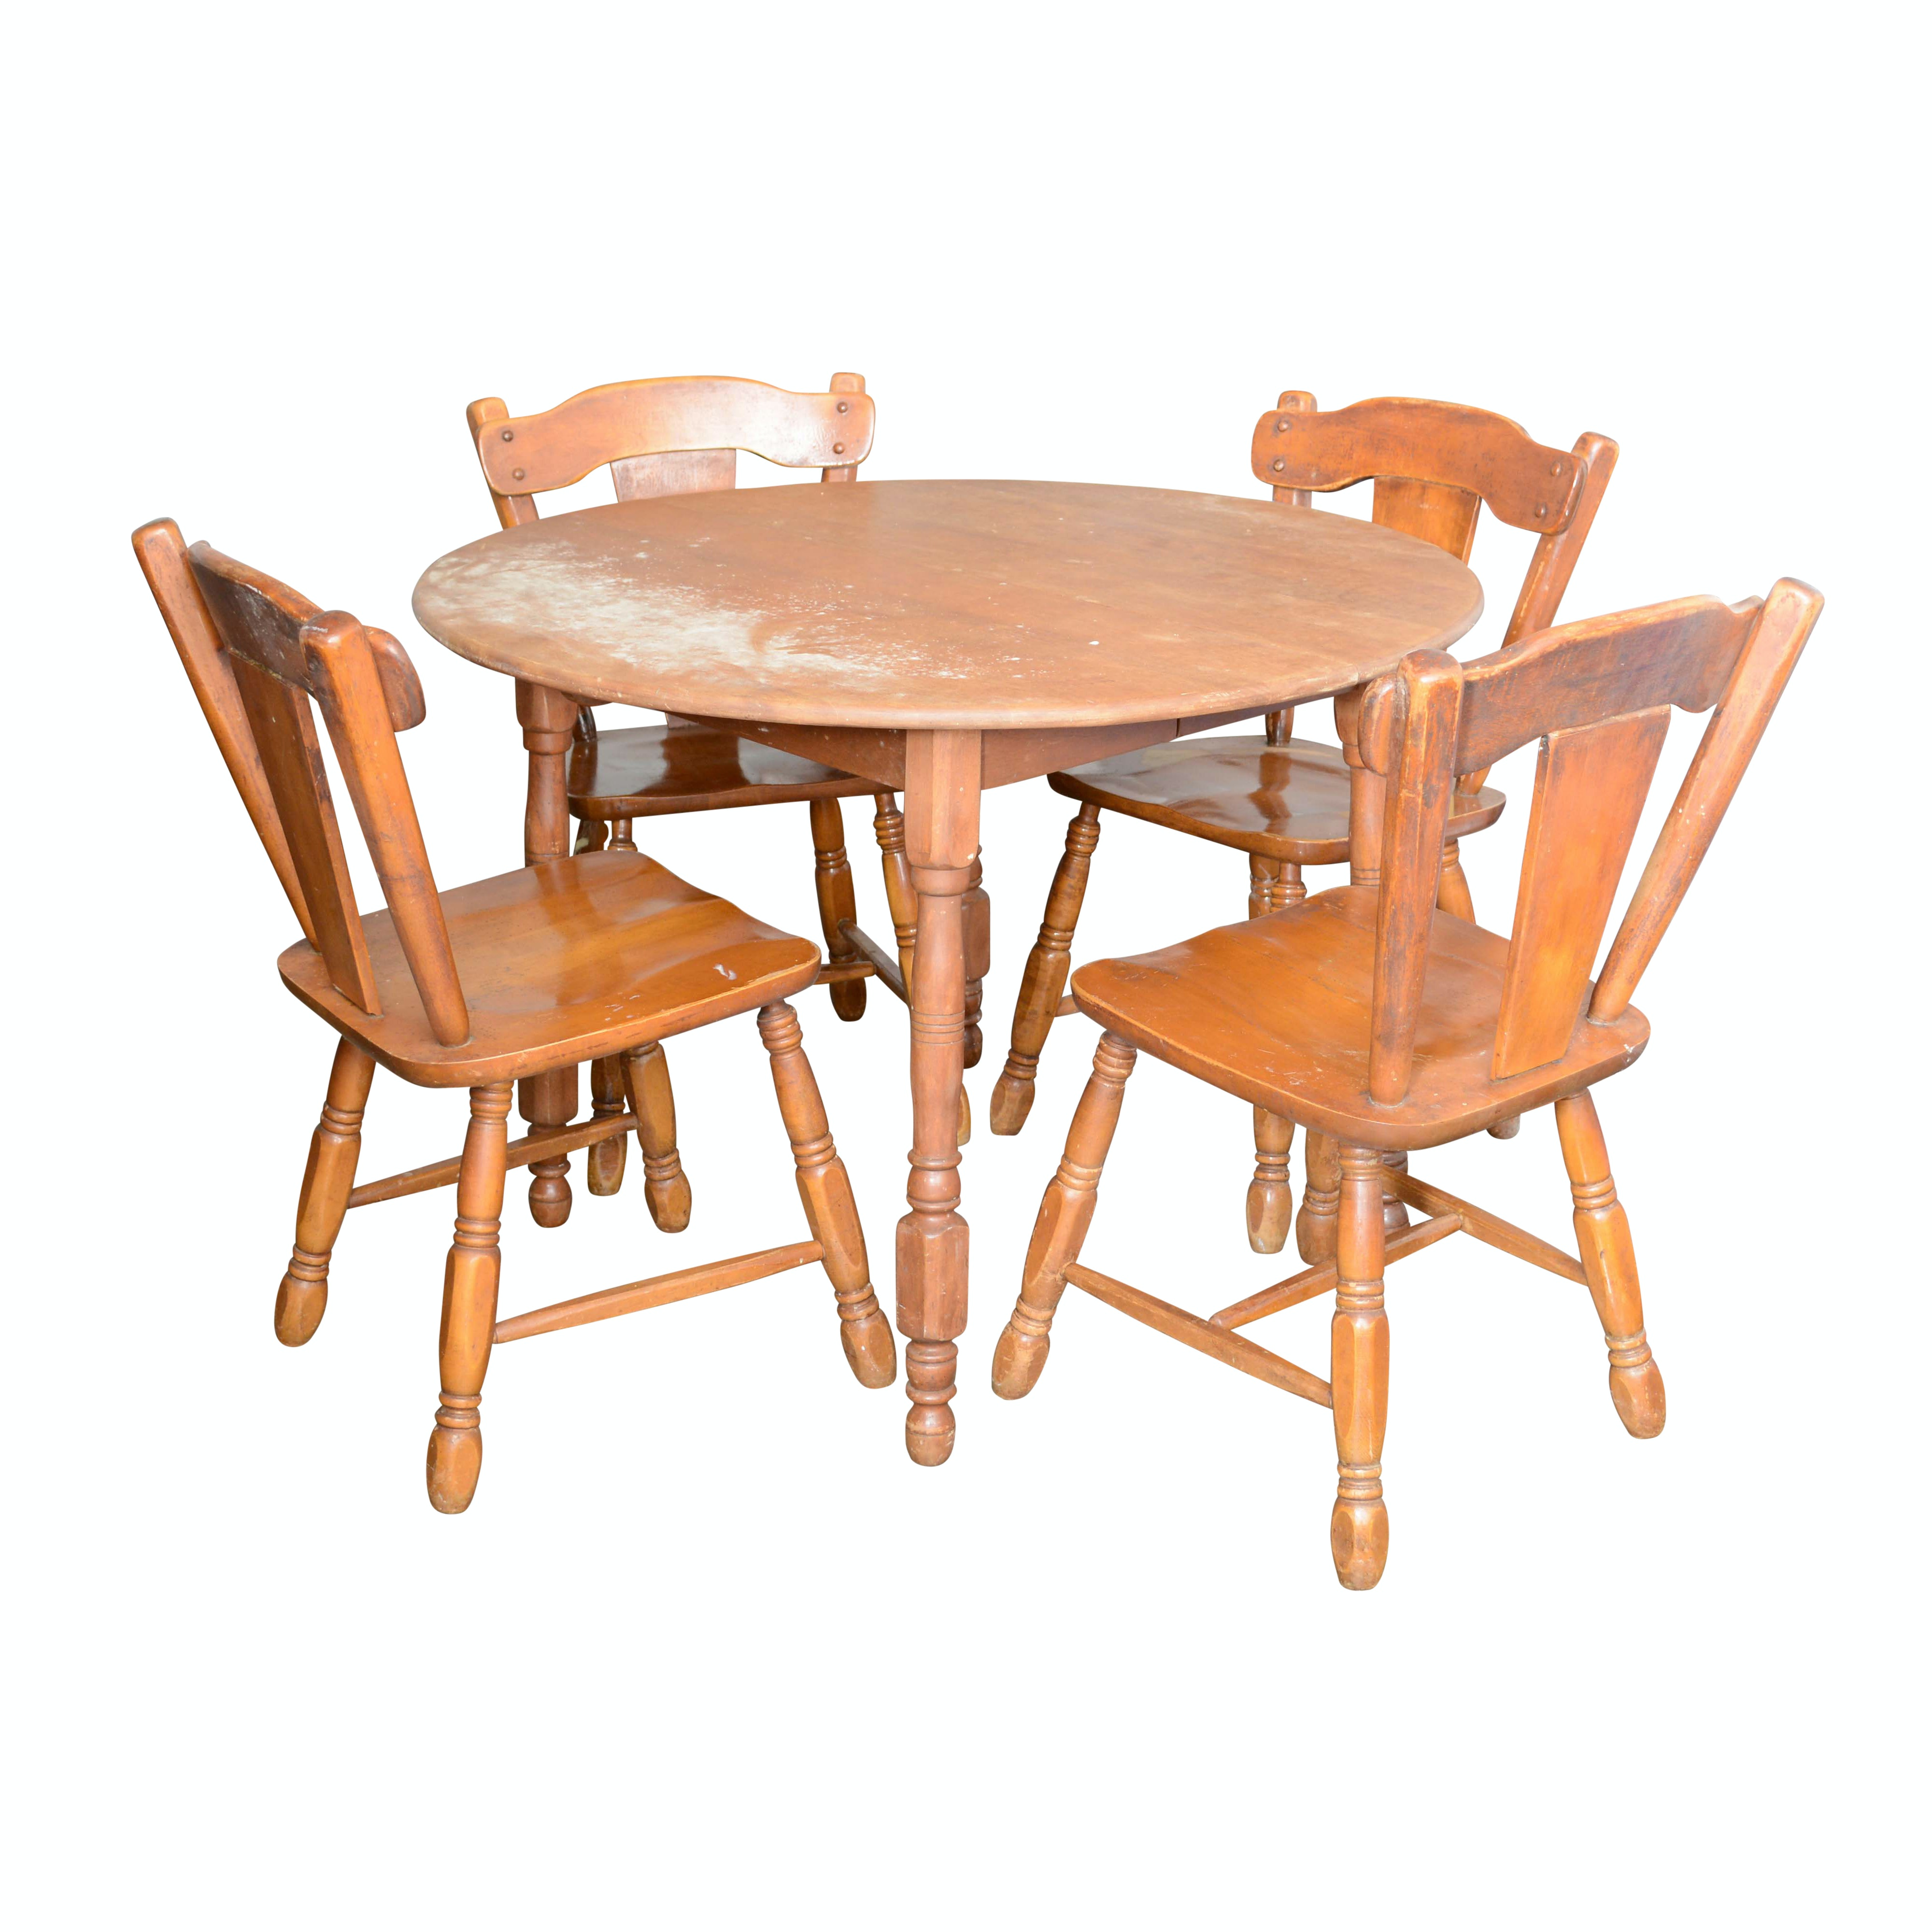 Colonial Style Maple Dining Set from Moosehead of Monson, Maine